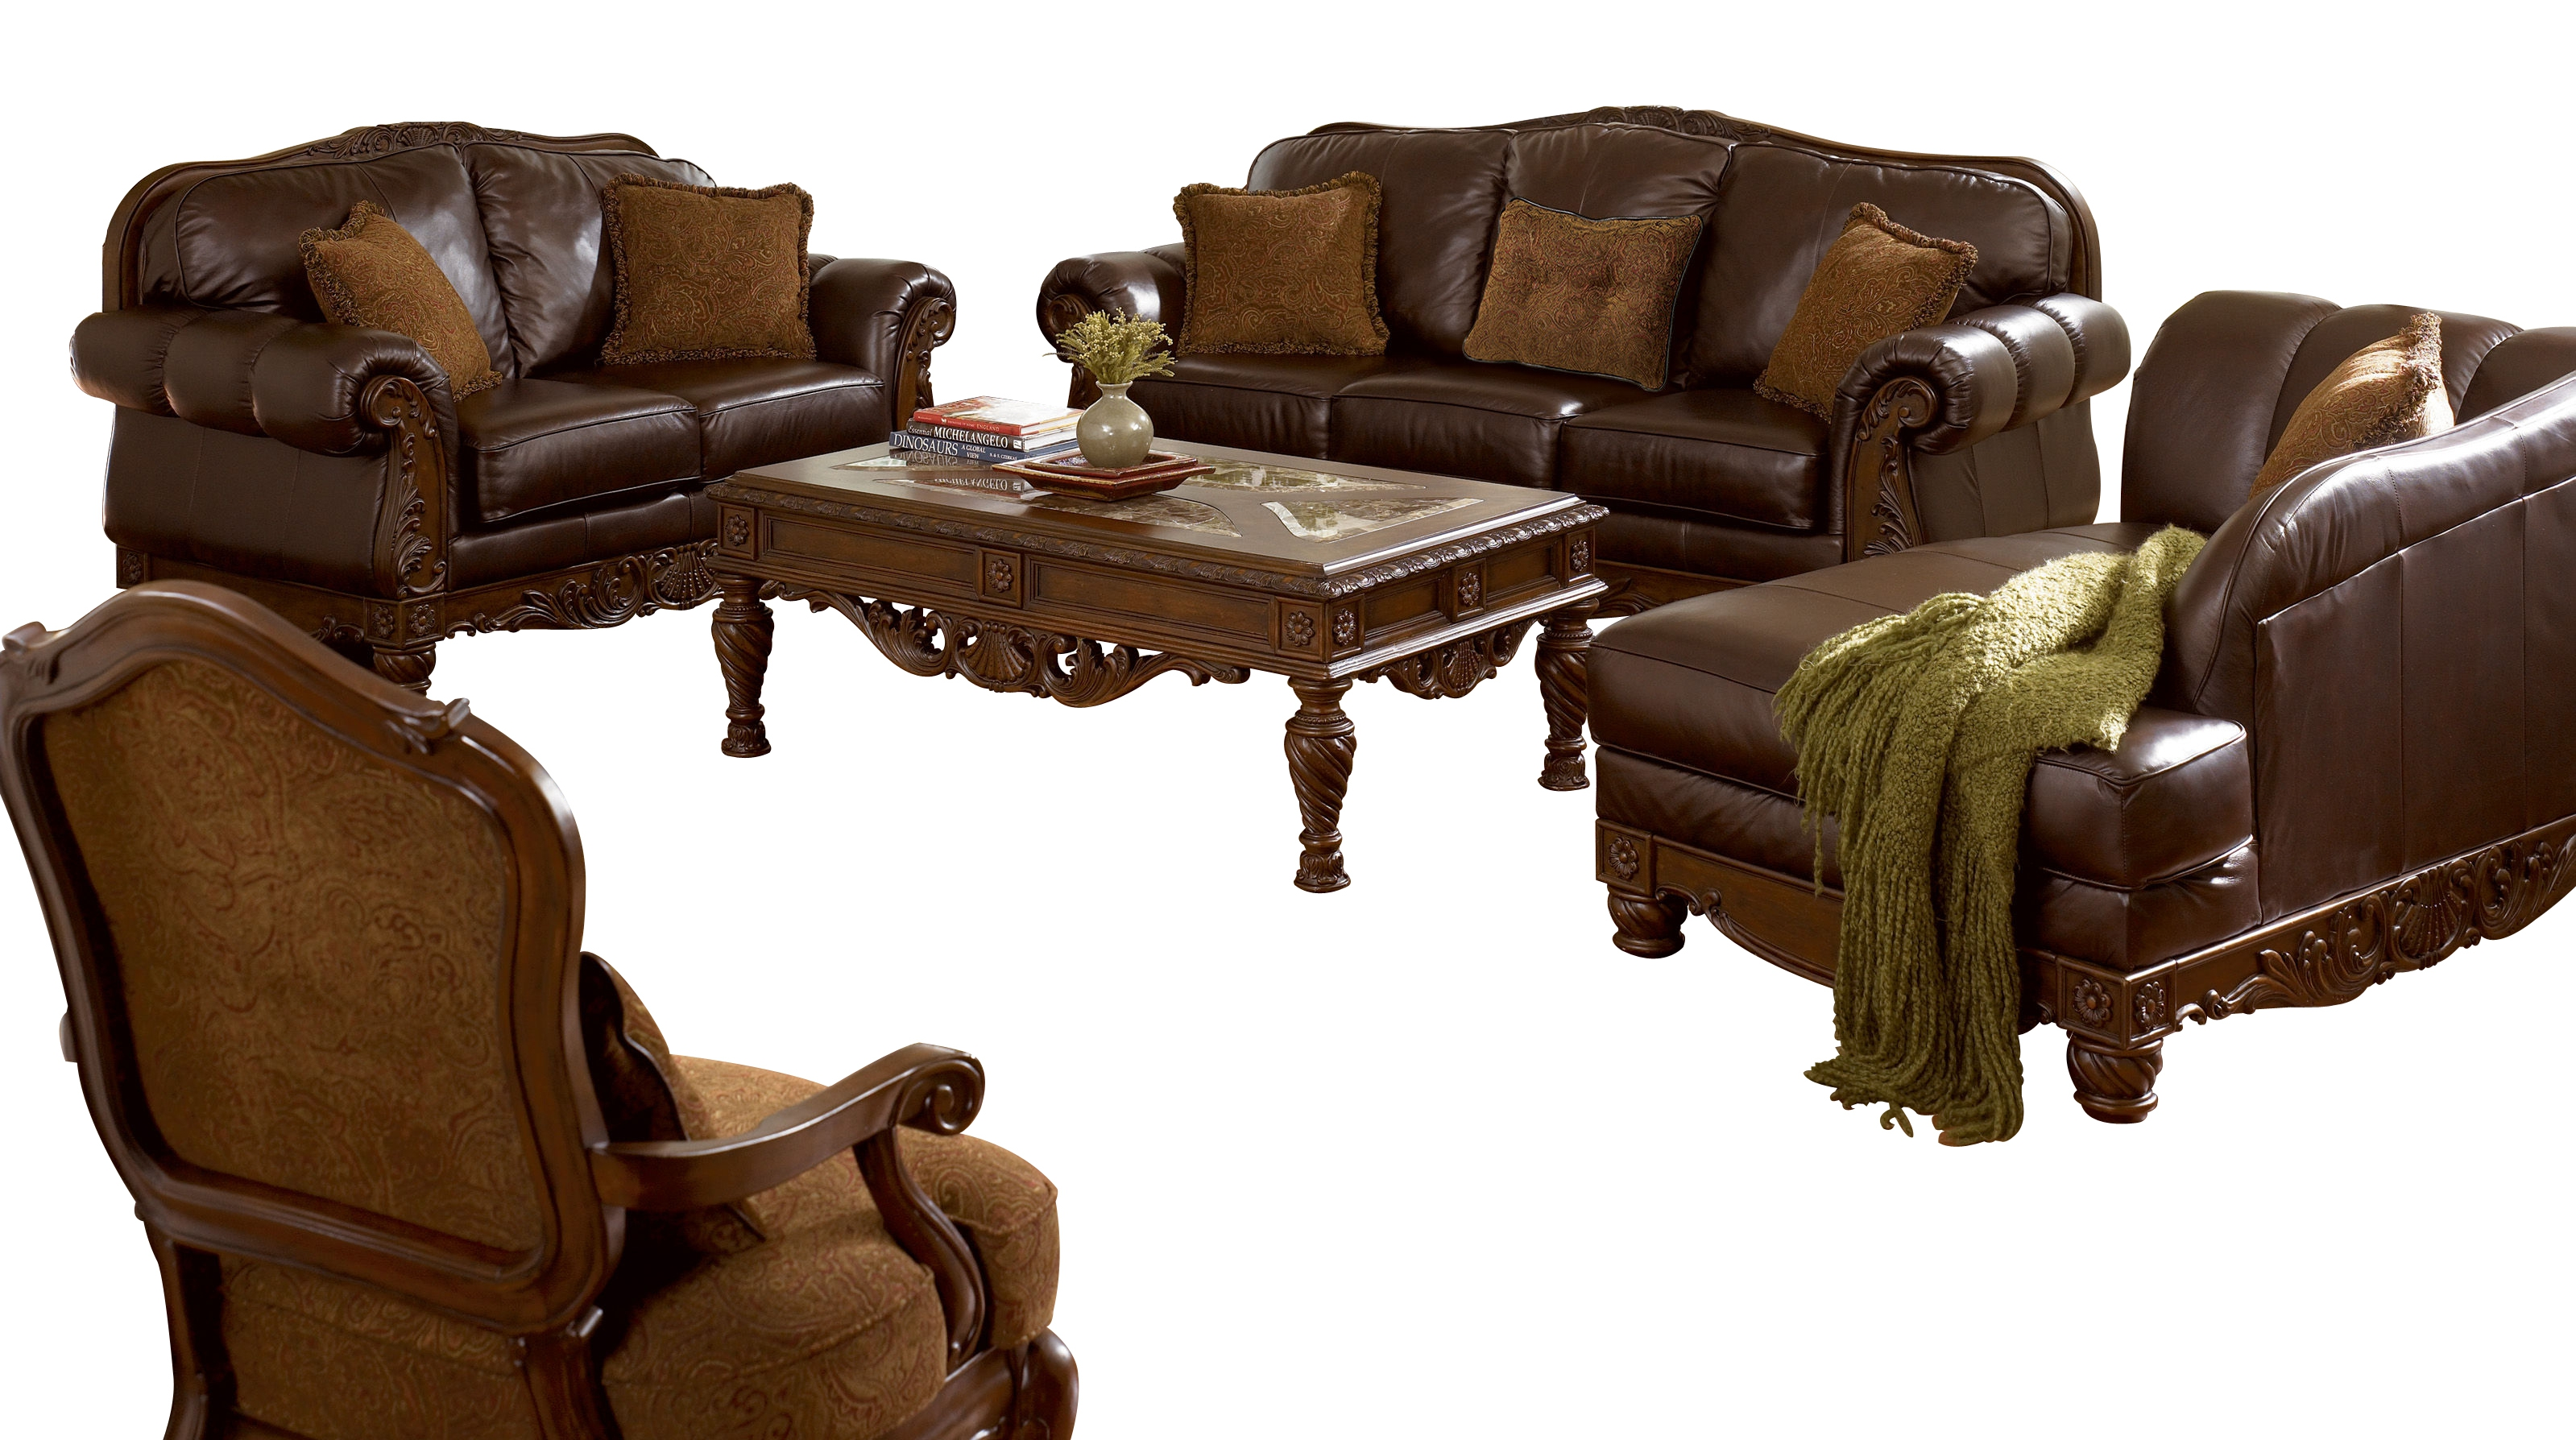 Gentil Ashley Furniture North Shore 3pc Living Room Set Click To Enlarge ...